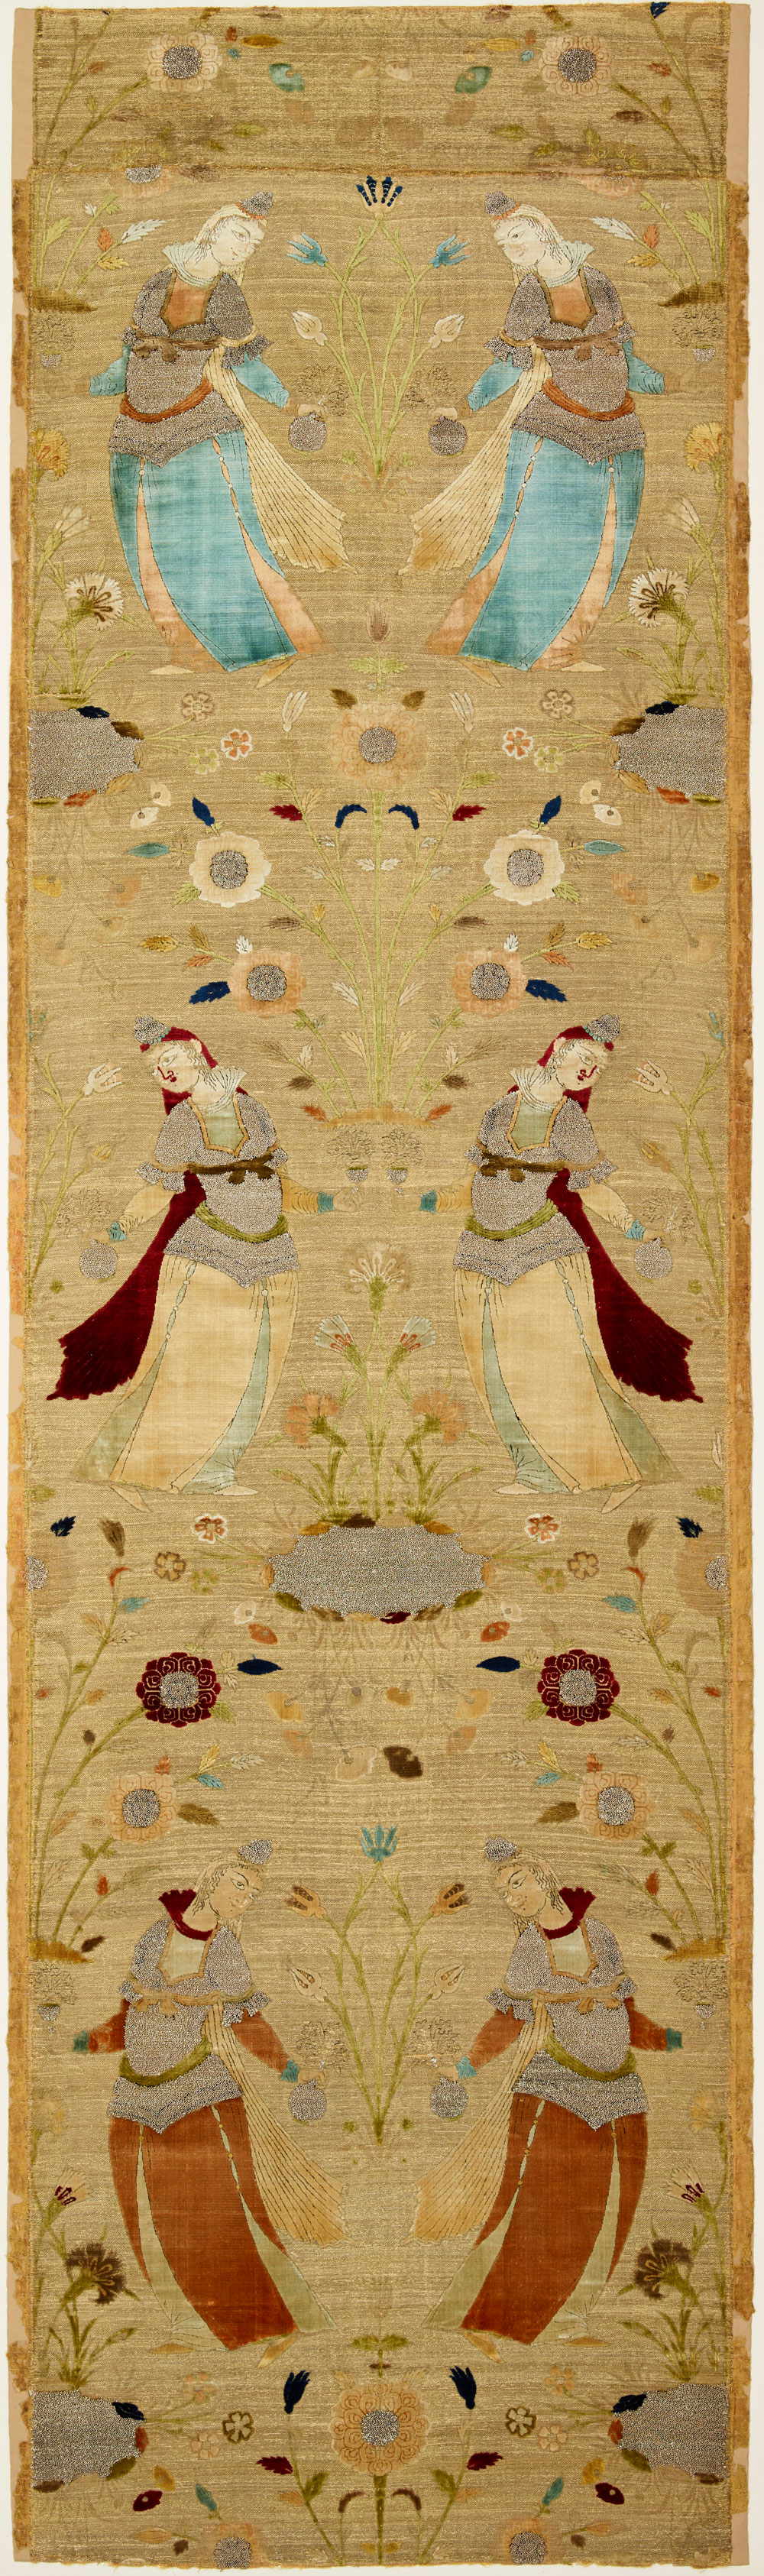 Textile fragment Iran, Isphahan (?), 17th–mid-17th century Velvet with ground brocade in gold Overall: 80 1/8 × 24 1/2 × 2 in. (2 m 3.52 cm × 62.23 cm × 5.08 cm) The Keir Collection of Islamic Art on loan to the Dallas Museum of Art, K.1.2014.621